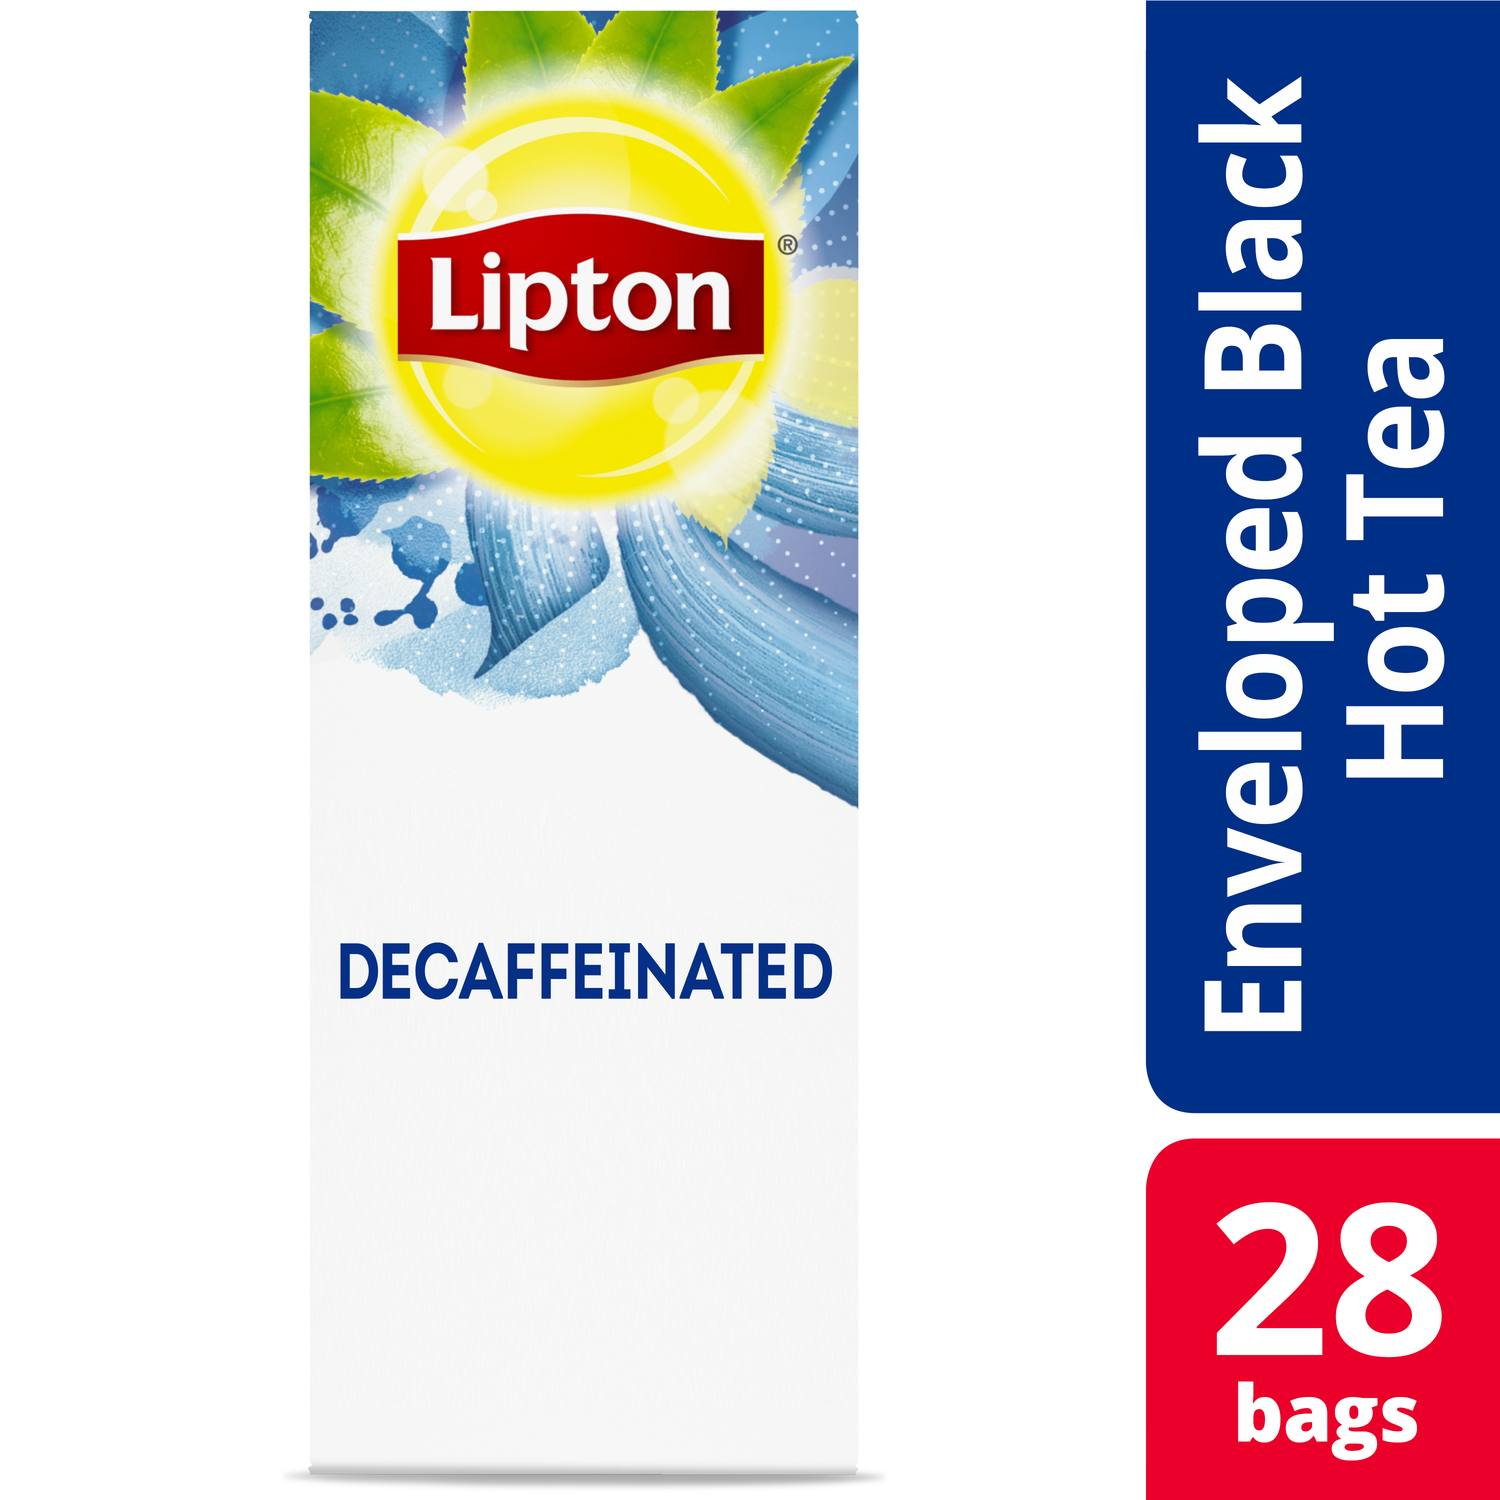 Lipton® Decaffeinated Black Tea 6 x 28 bags - Lipton varieties suit every mood.